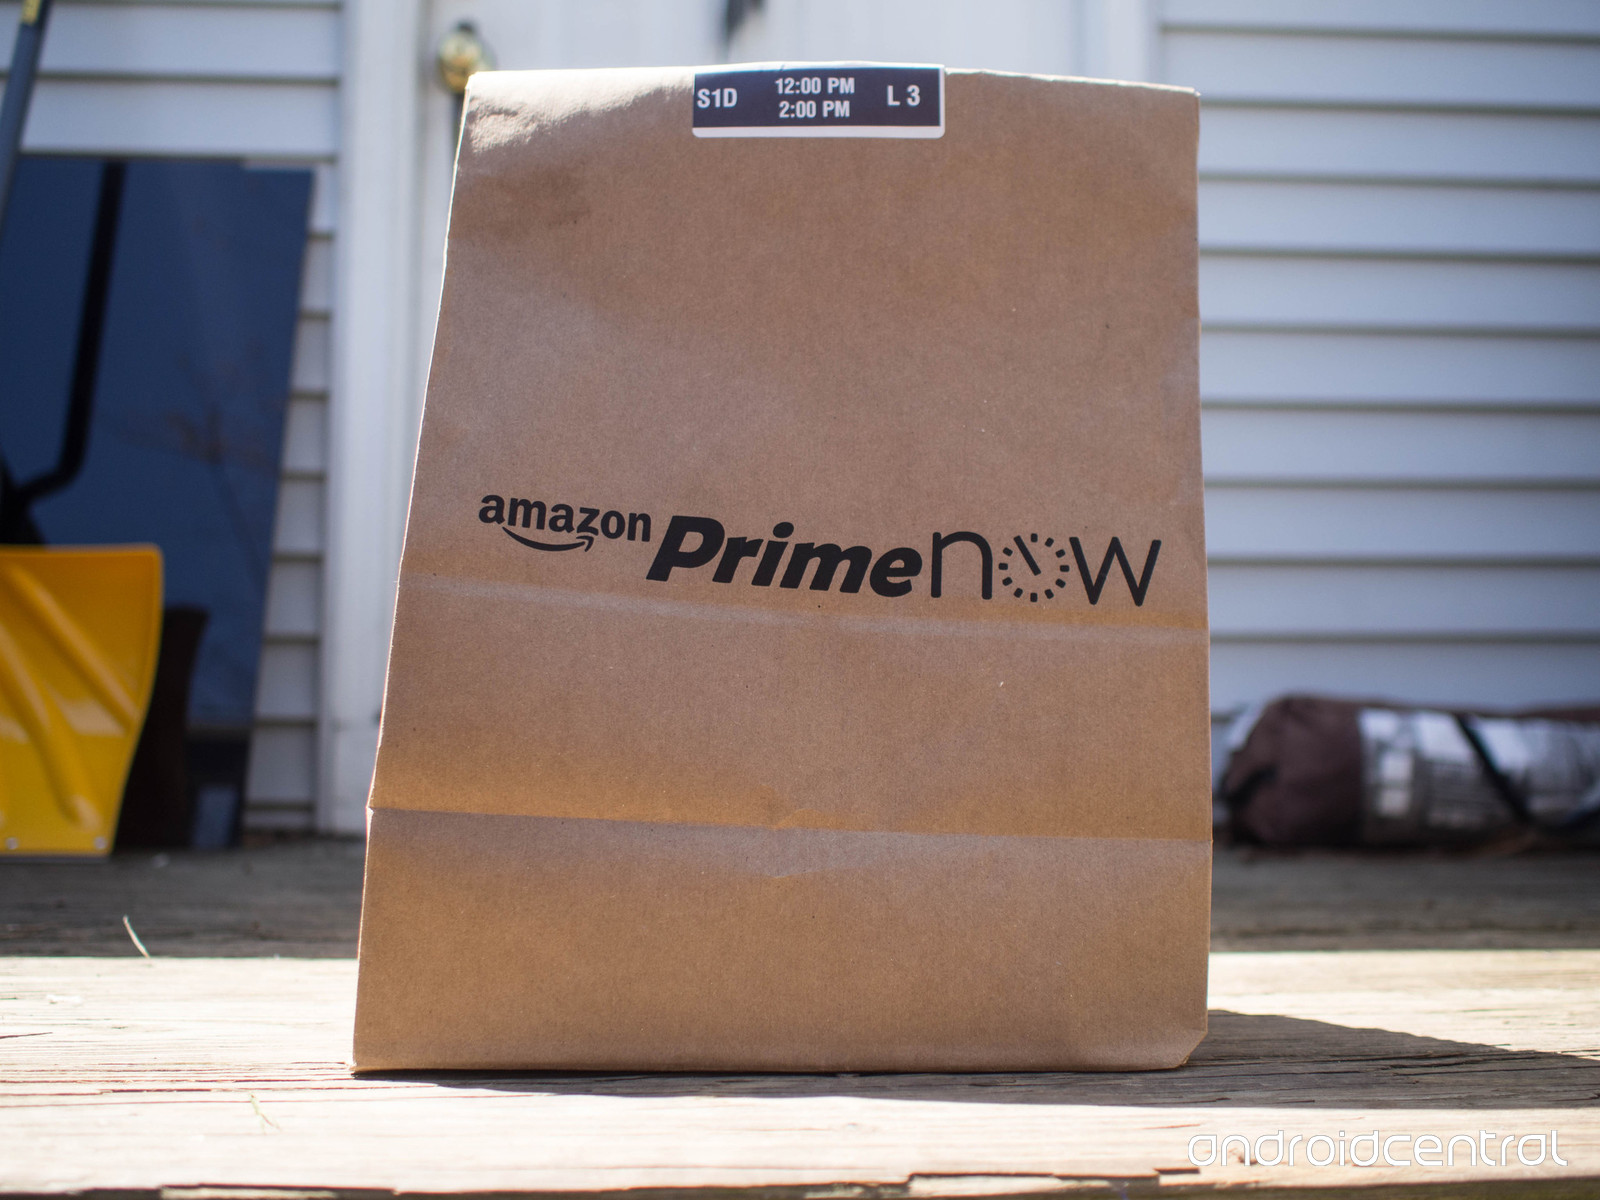 Amazon Now Amazon Just Launched Its Prime Now Service In Singapore